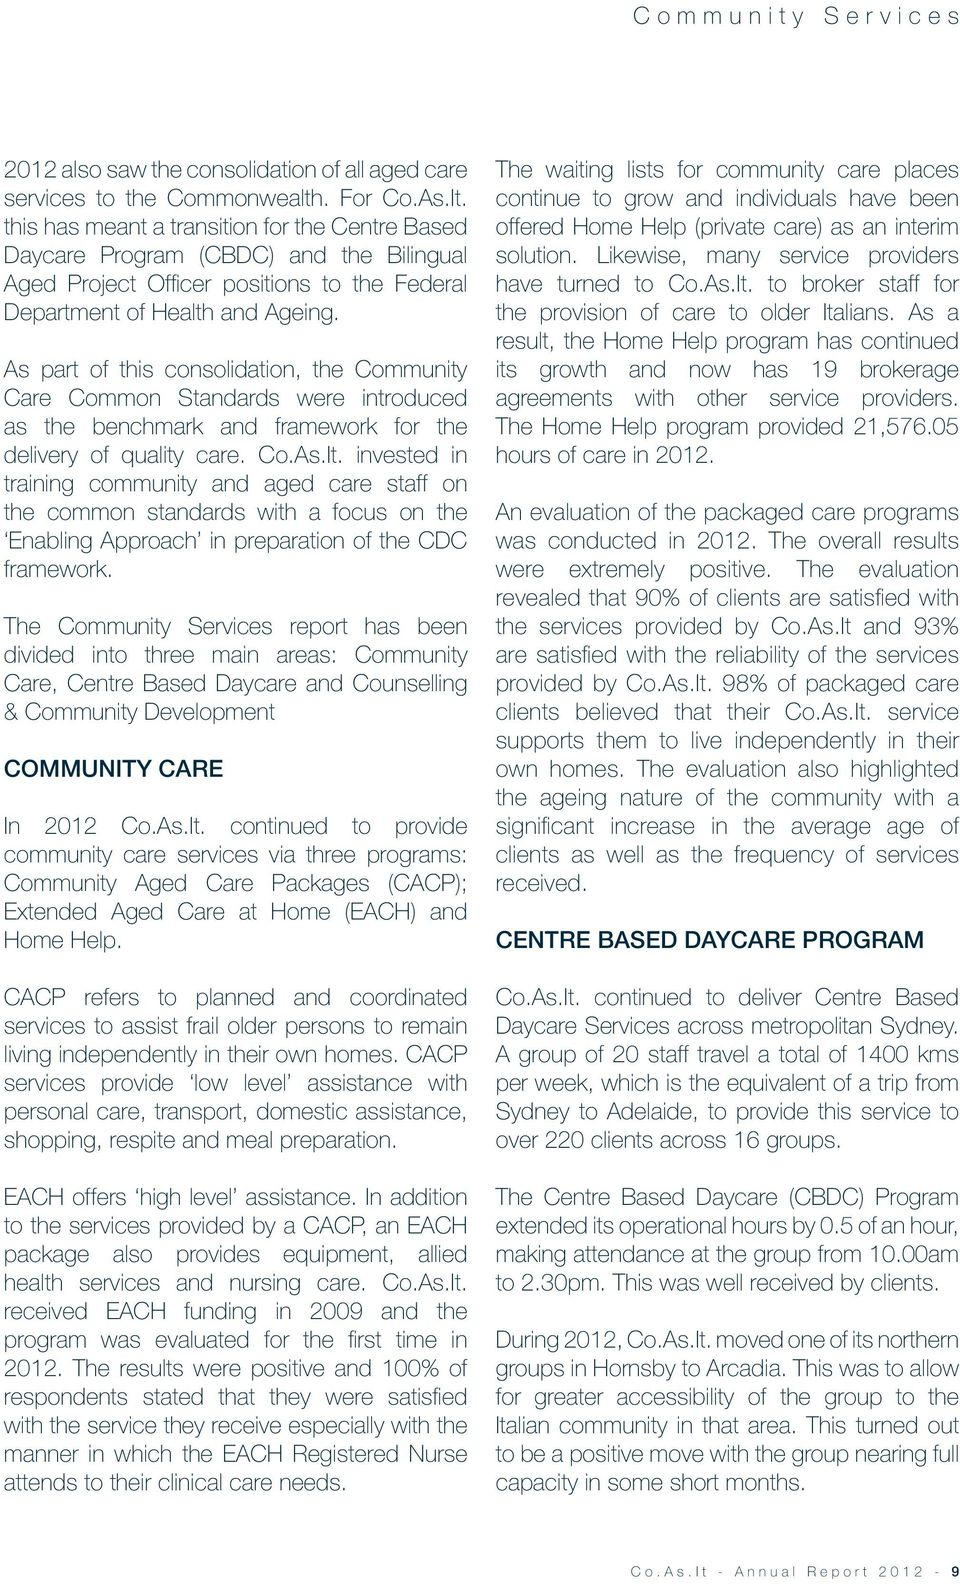 As part of this consolidation, the Community Care Common Standards were introduced as the benchmark and framework for the delivery of quality care. Co.As.It.